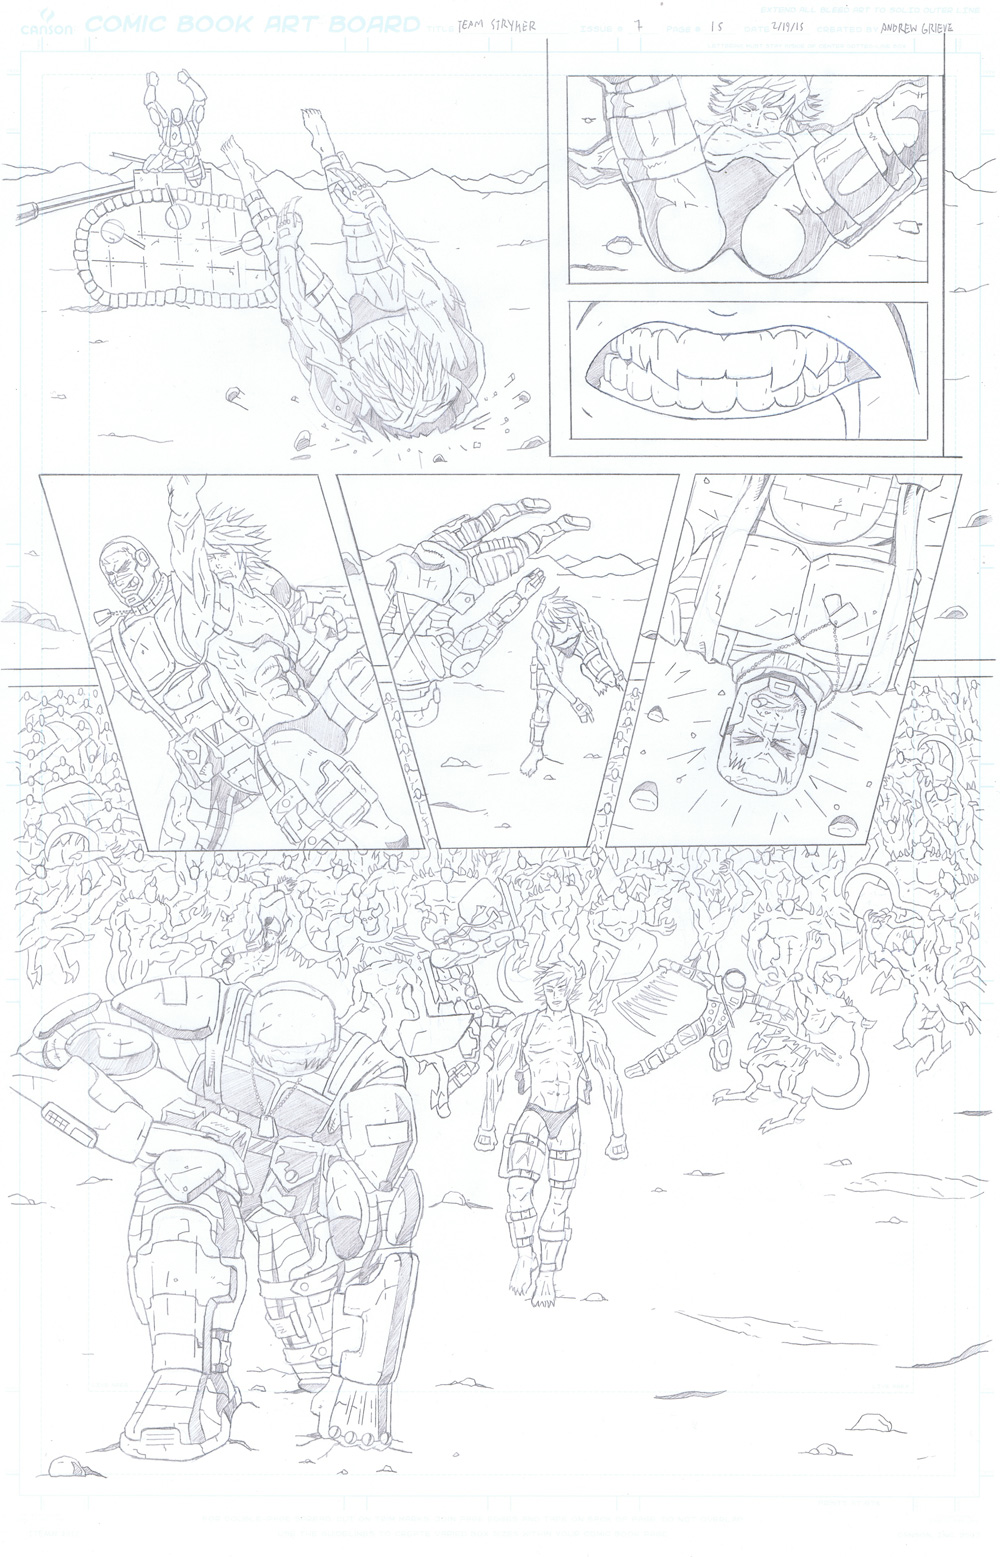 MISSION 007: PAGE 15 PENCIL